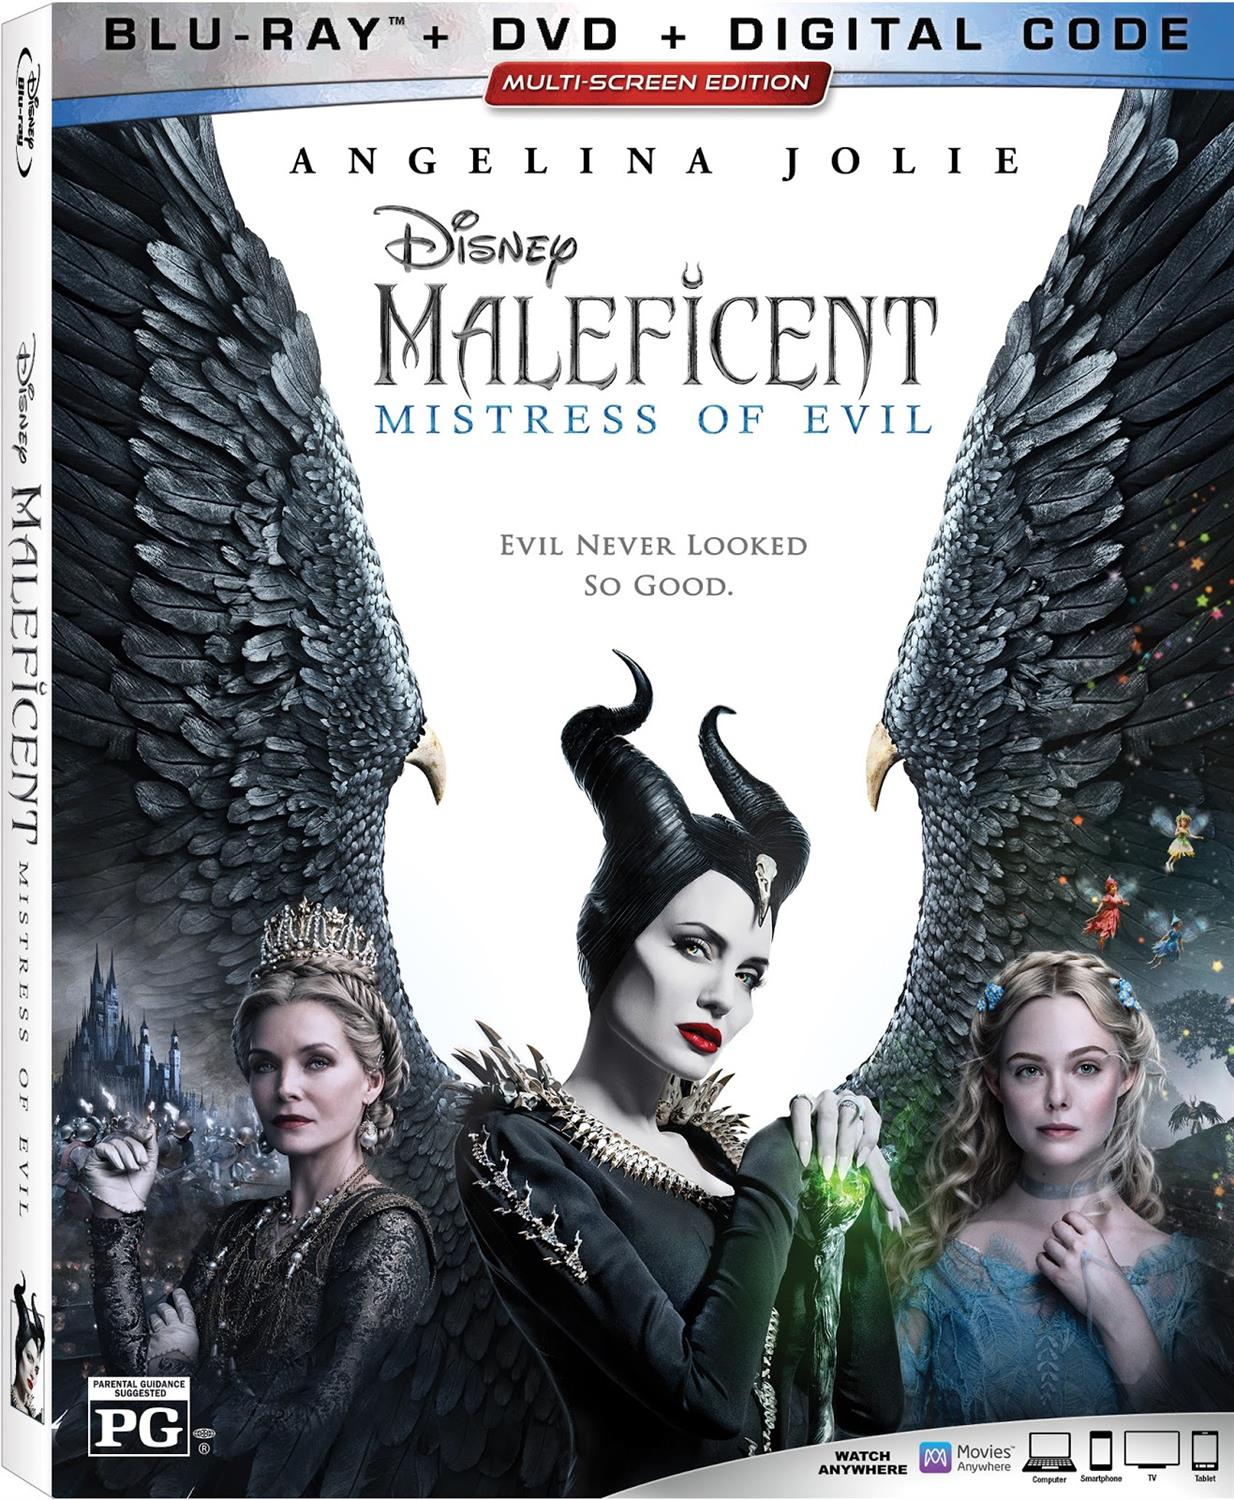 Maleficent Mistress Of Evil Comes To Home Release This Winter